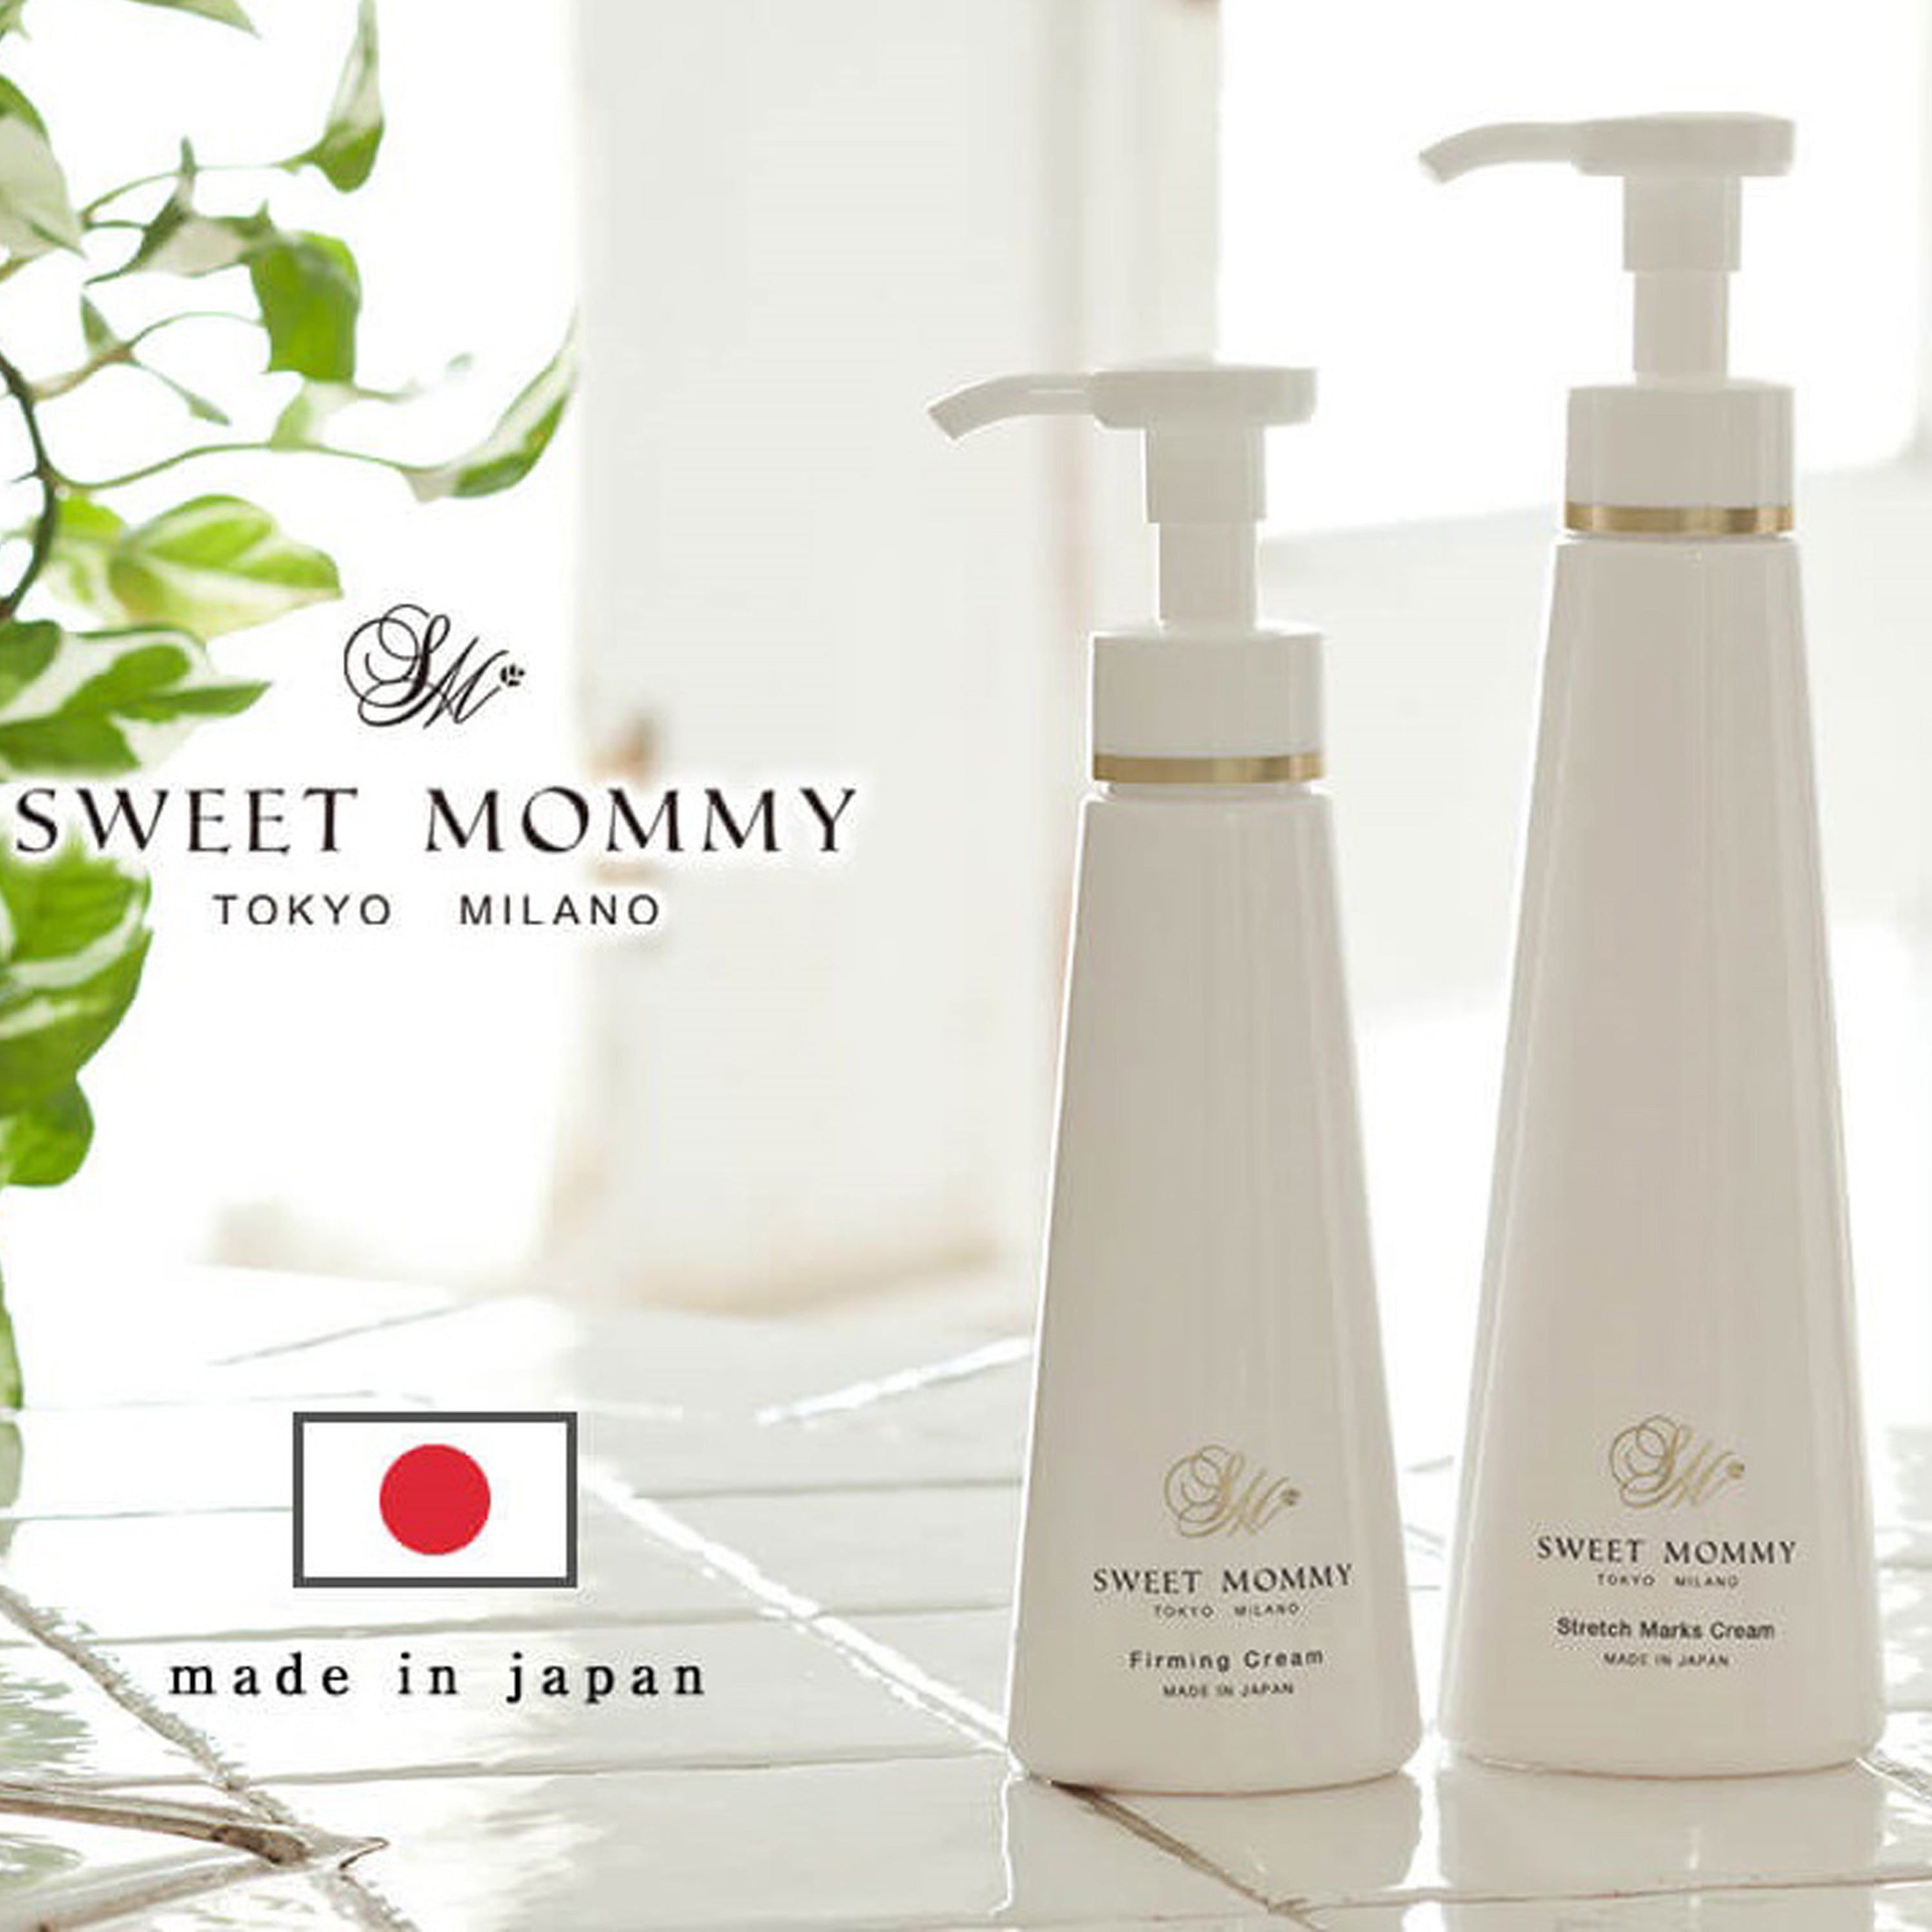 【Made in Japan】Sweet Mommy Lavender-scented  Firming Cream for Swollen Legs